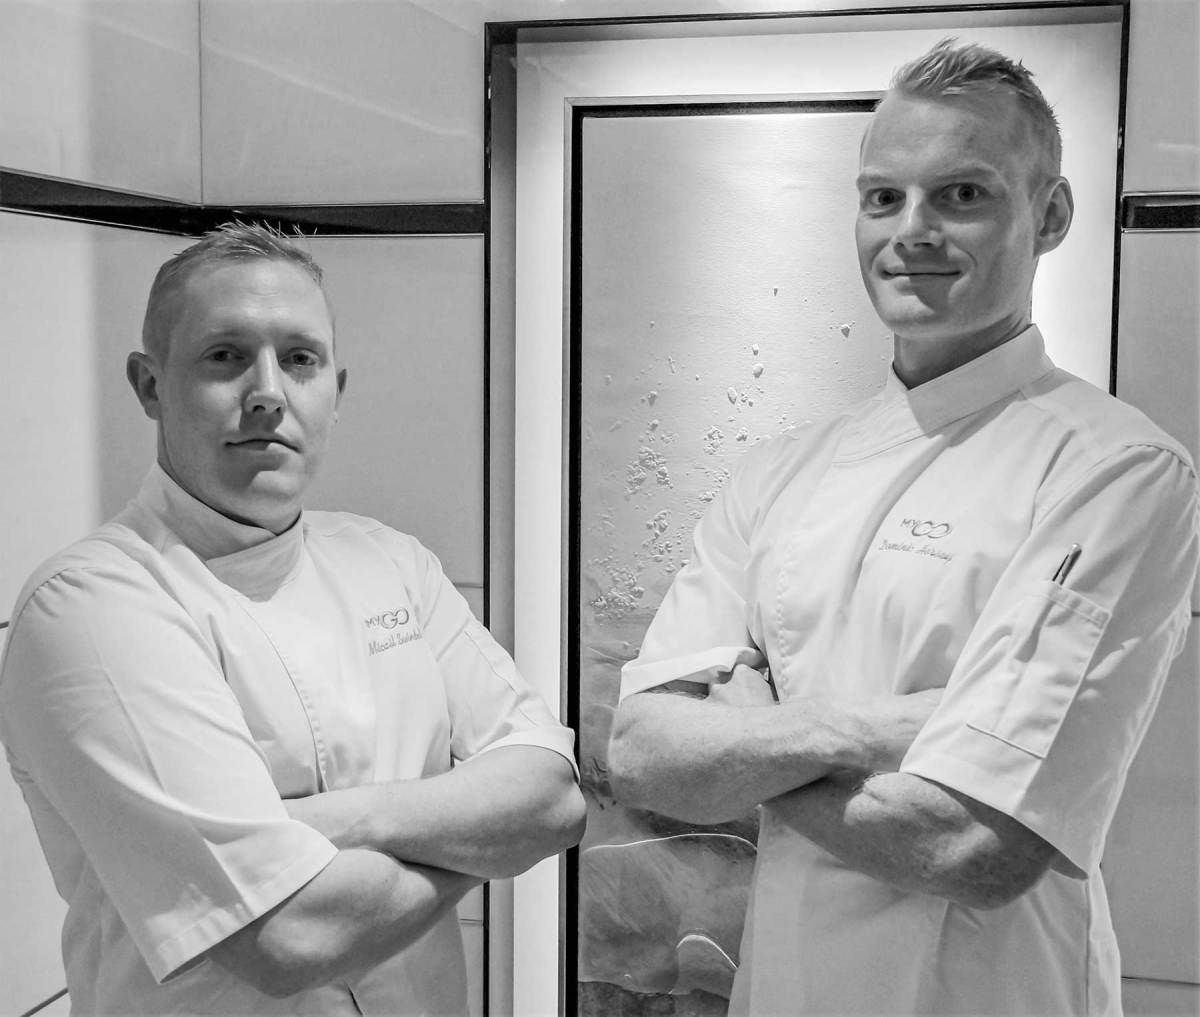 Head Chef Micail Swindells and assistant chef Dominic Horsey aboard Go.